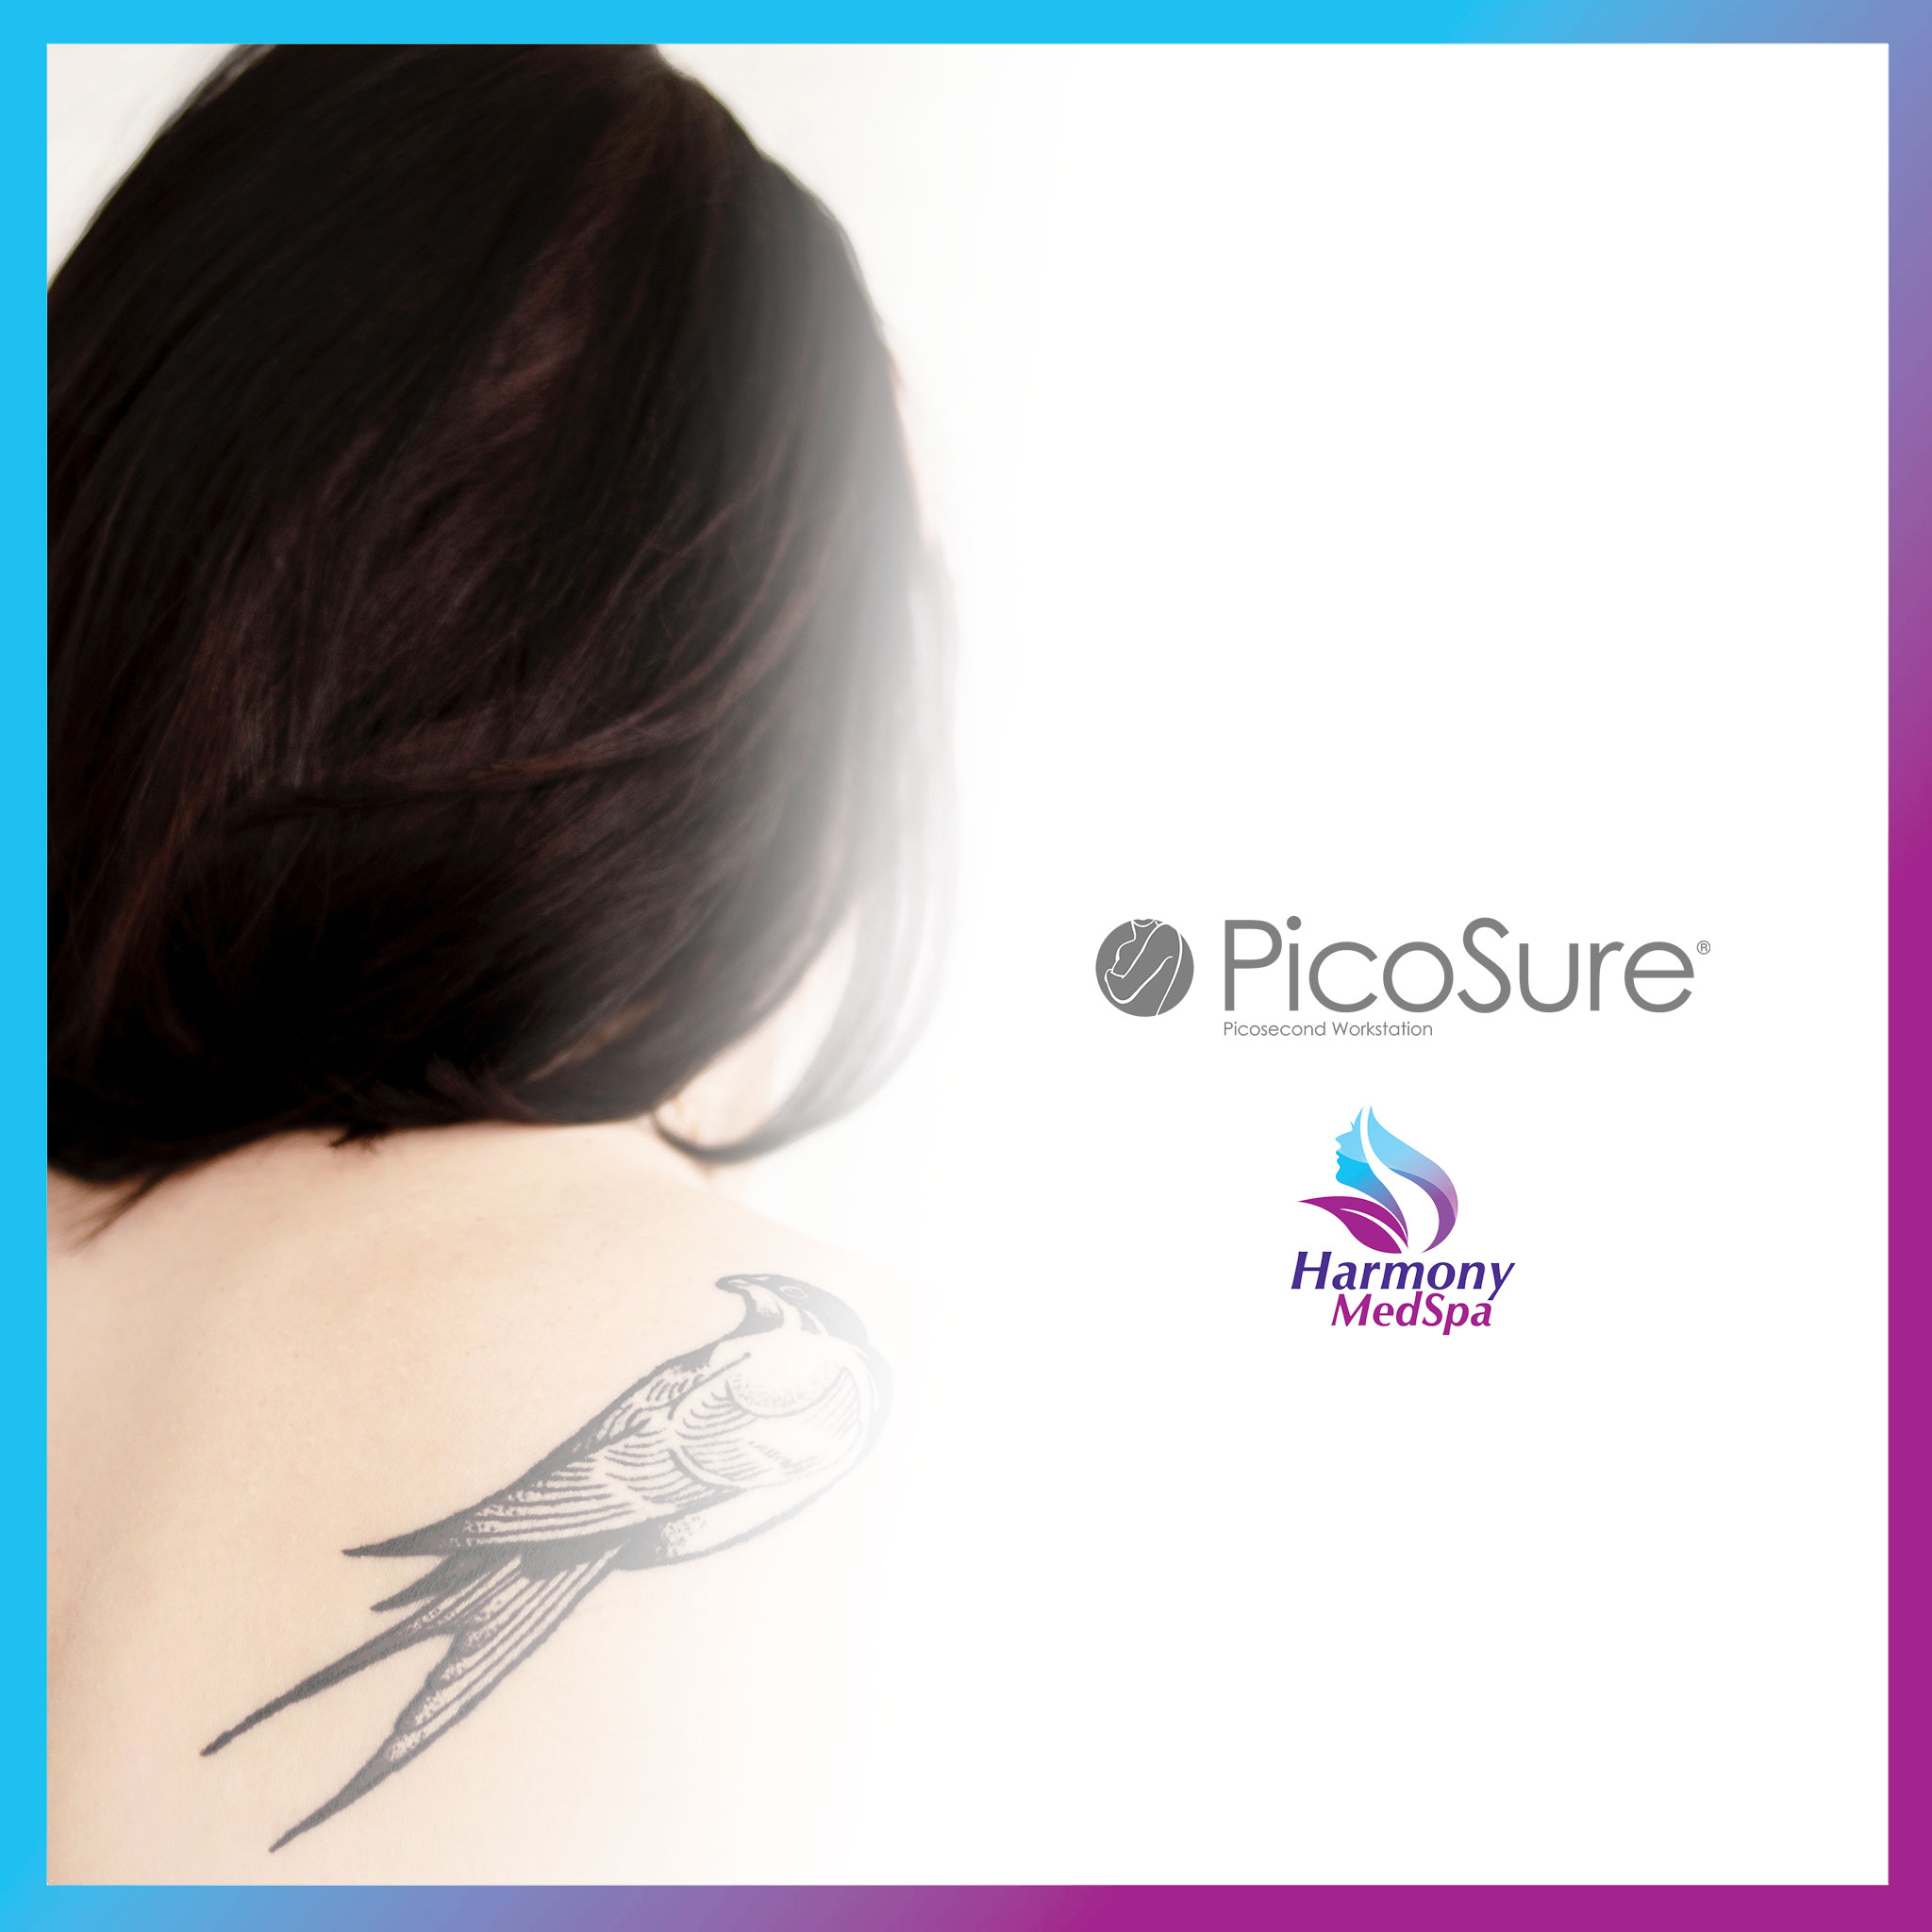 6 Benefits of PicoSure for Tattoo Removal 2